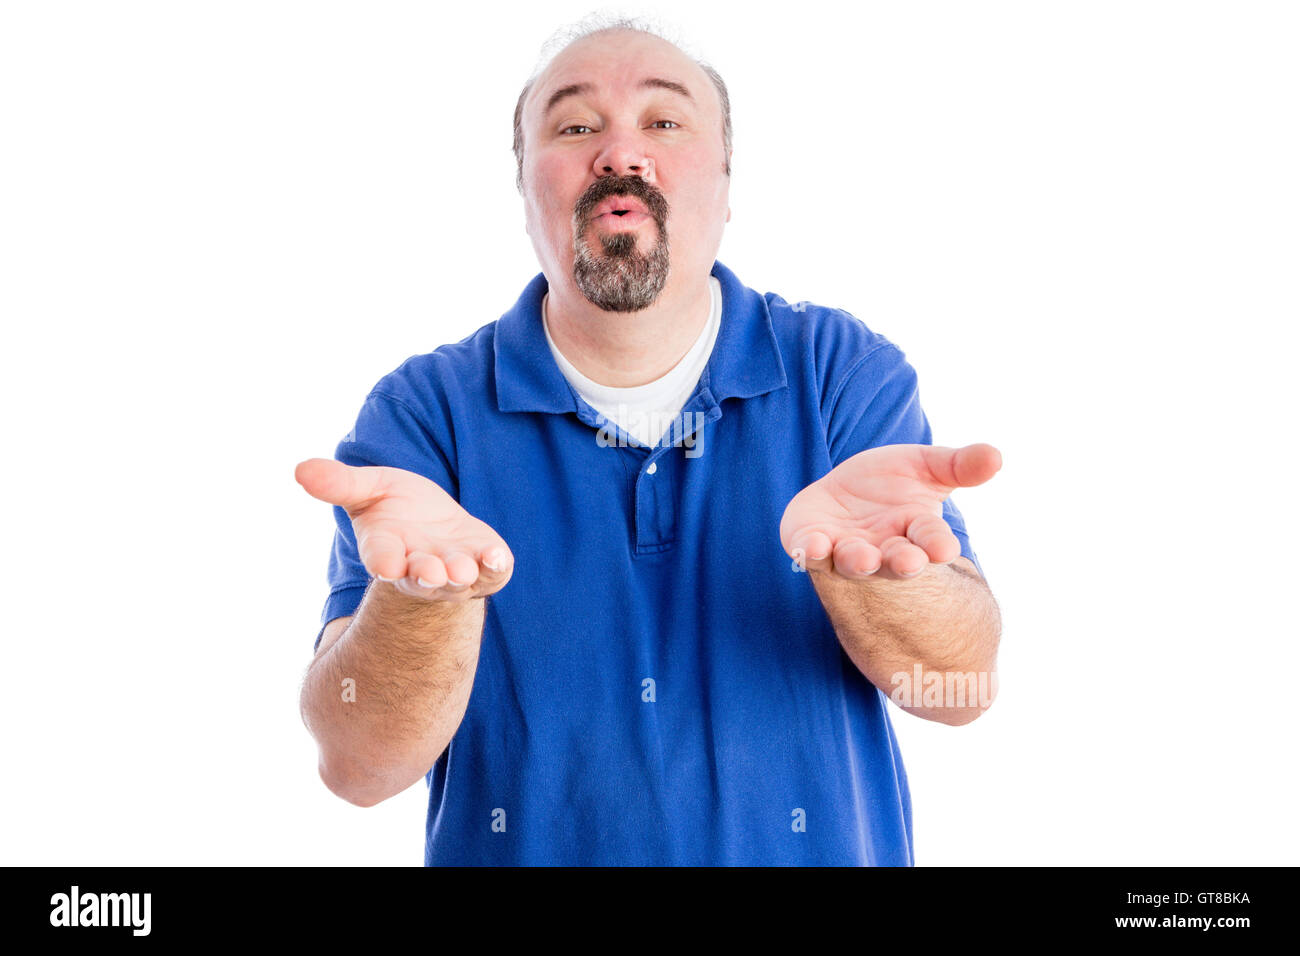 Persuasive middle-aged man with a goatee cajoling and pleading with his hands outstretched , upper body in a blue - Stock Image